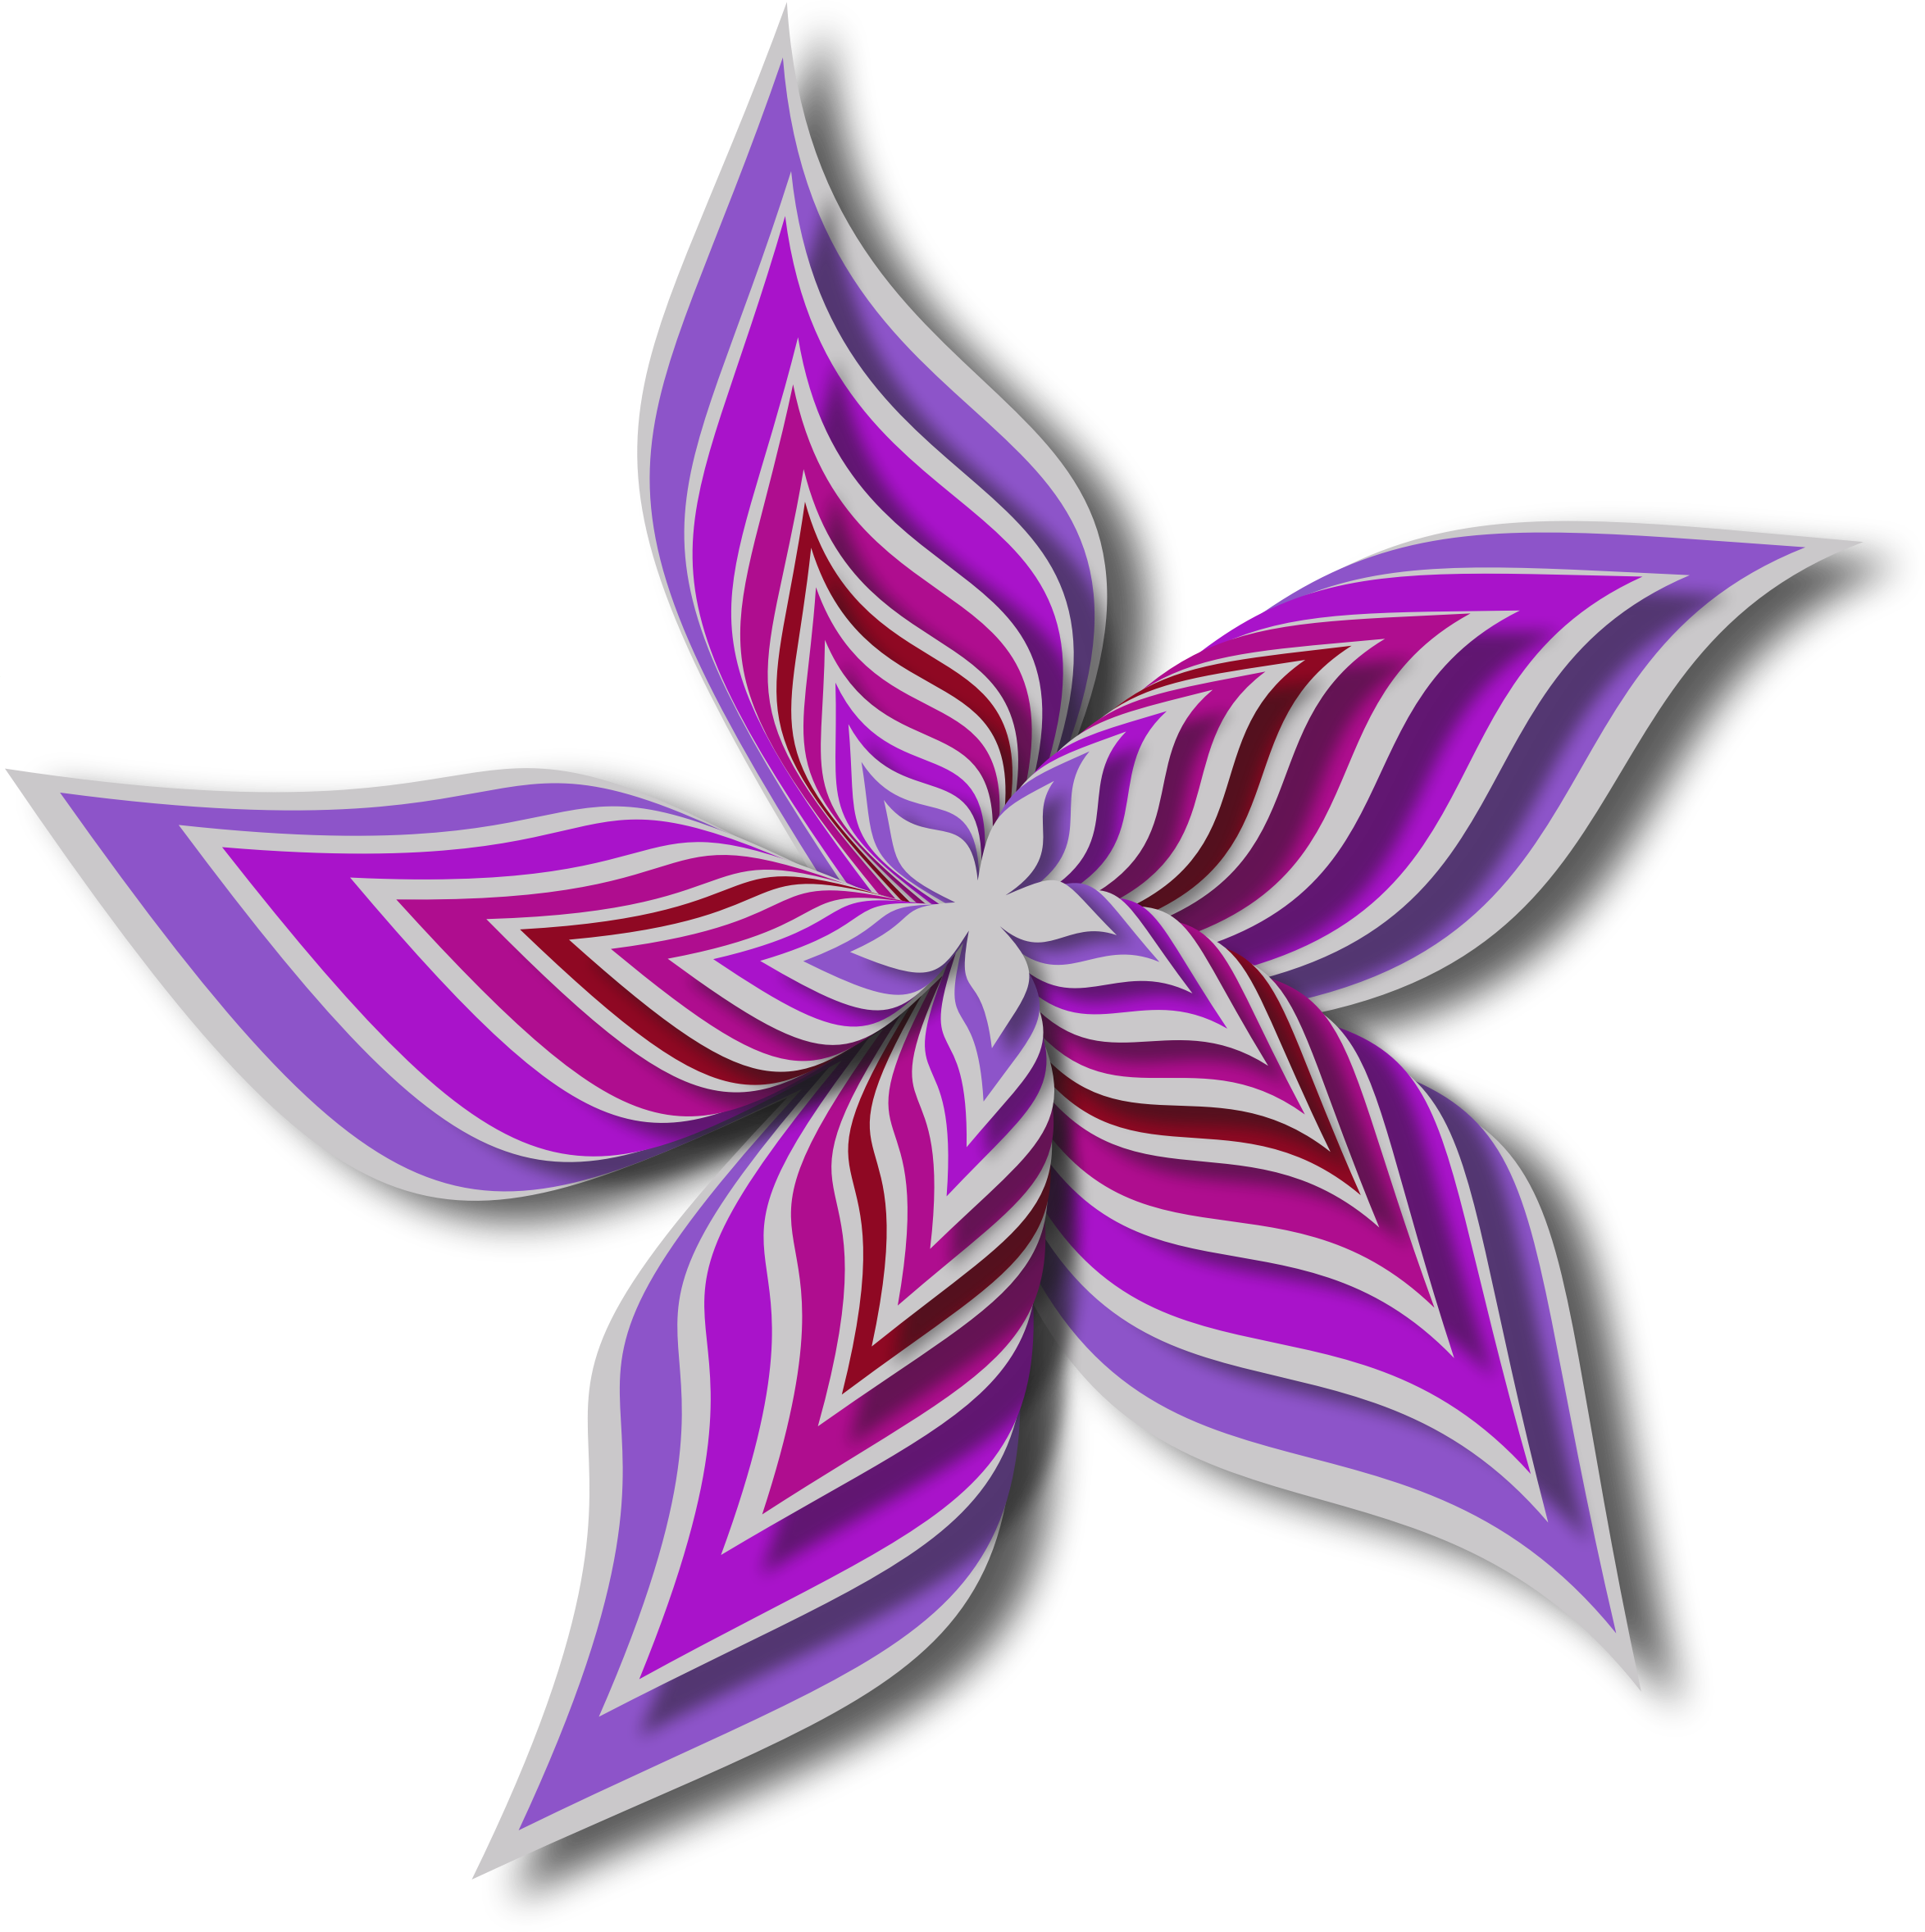 Abstract flower 28 (colour 8) by Firkin